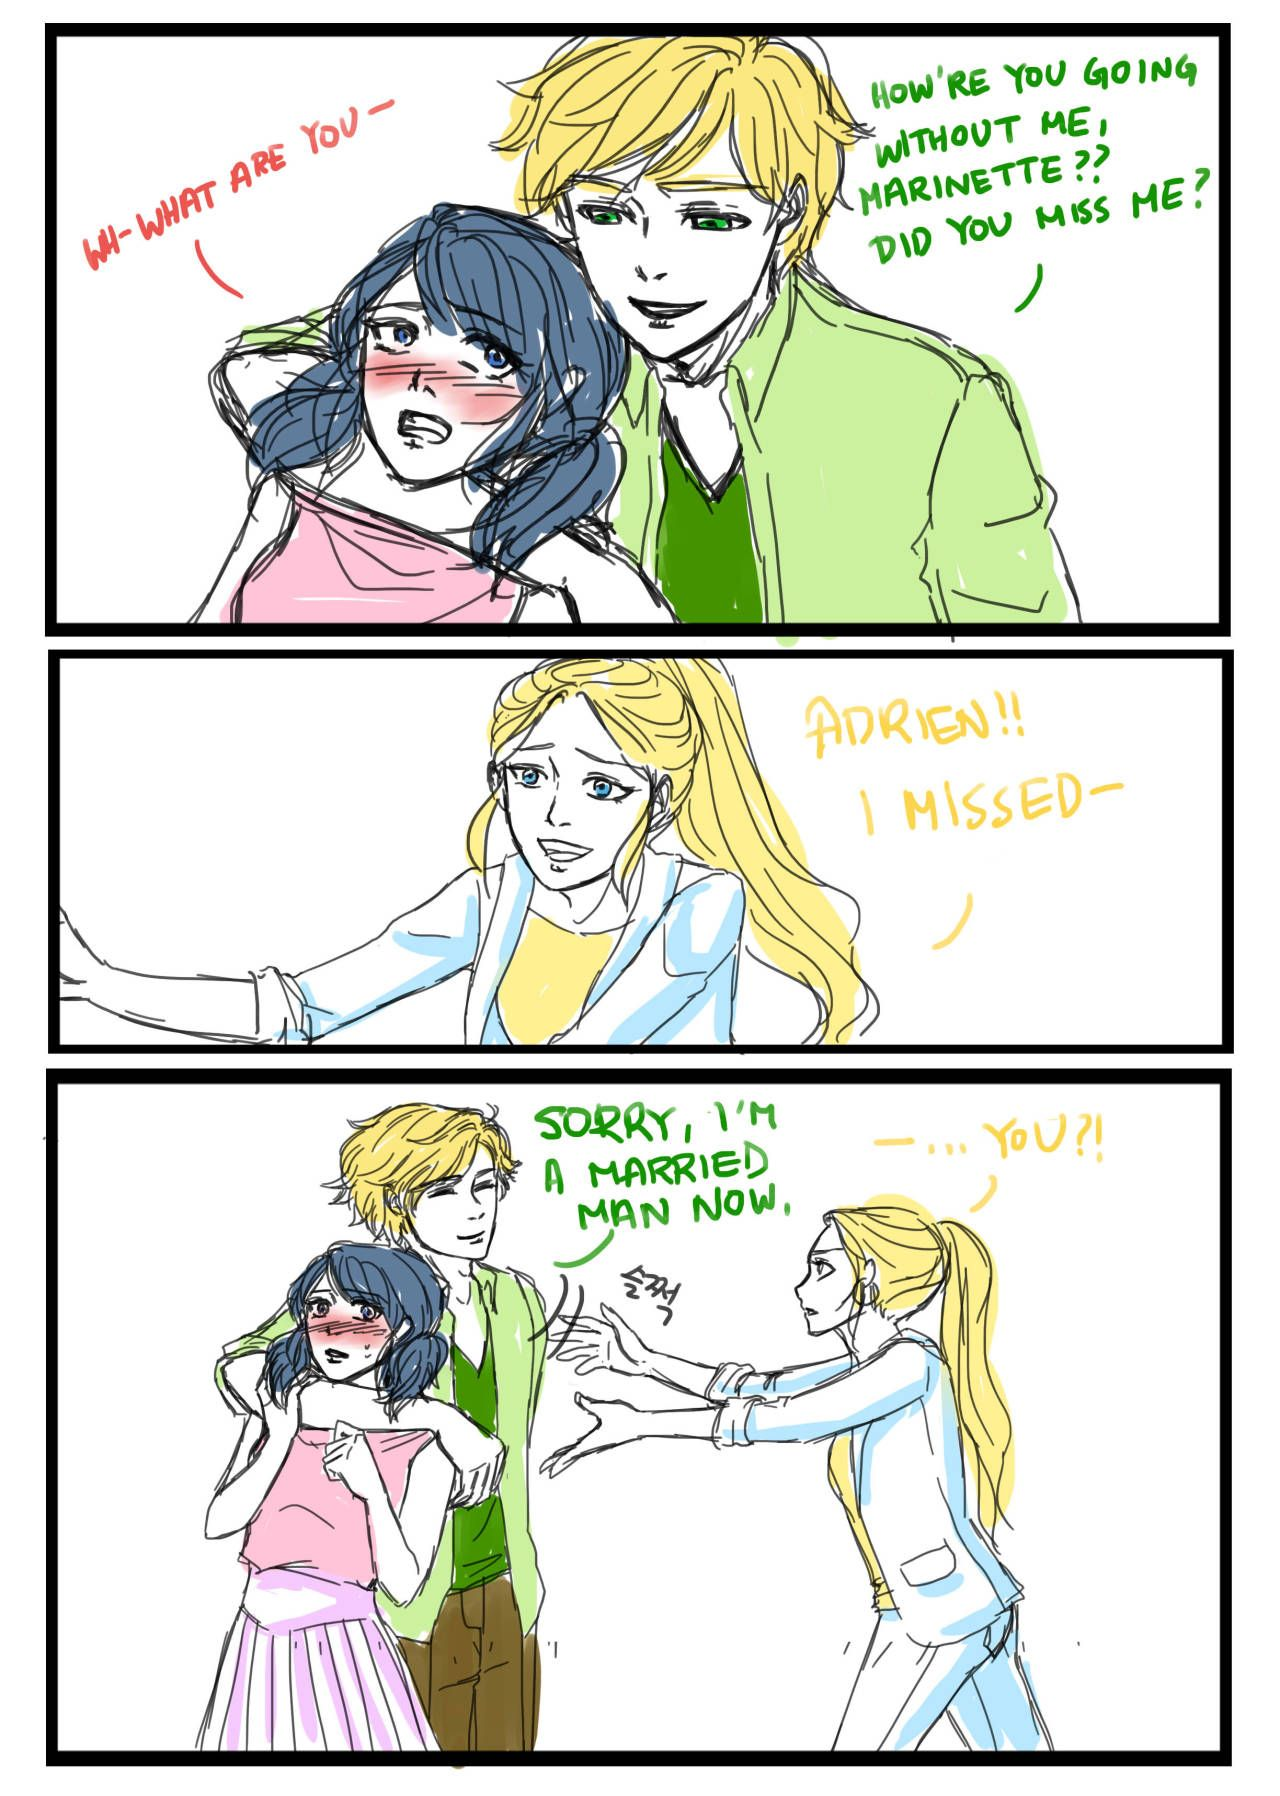 Pin by Fir Xanza on miraculous | Miraculous ladybug funny